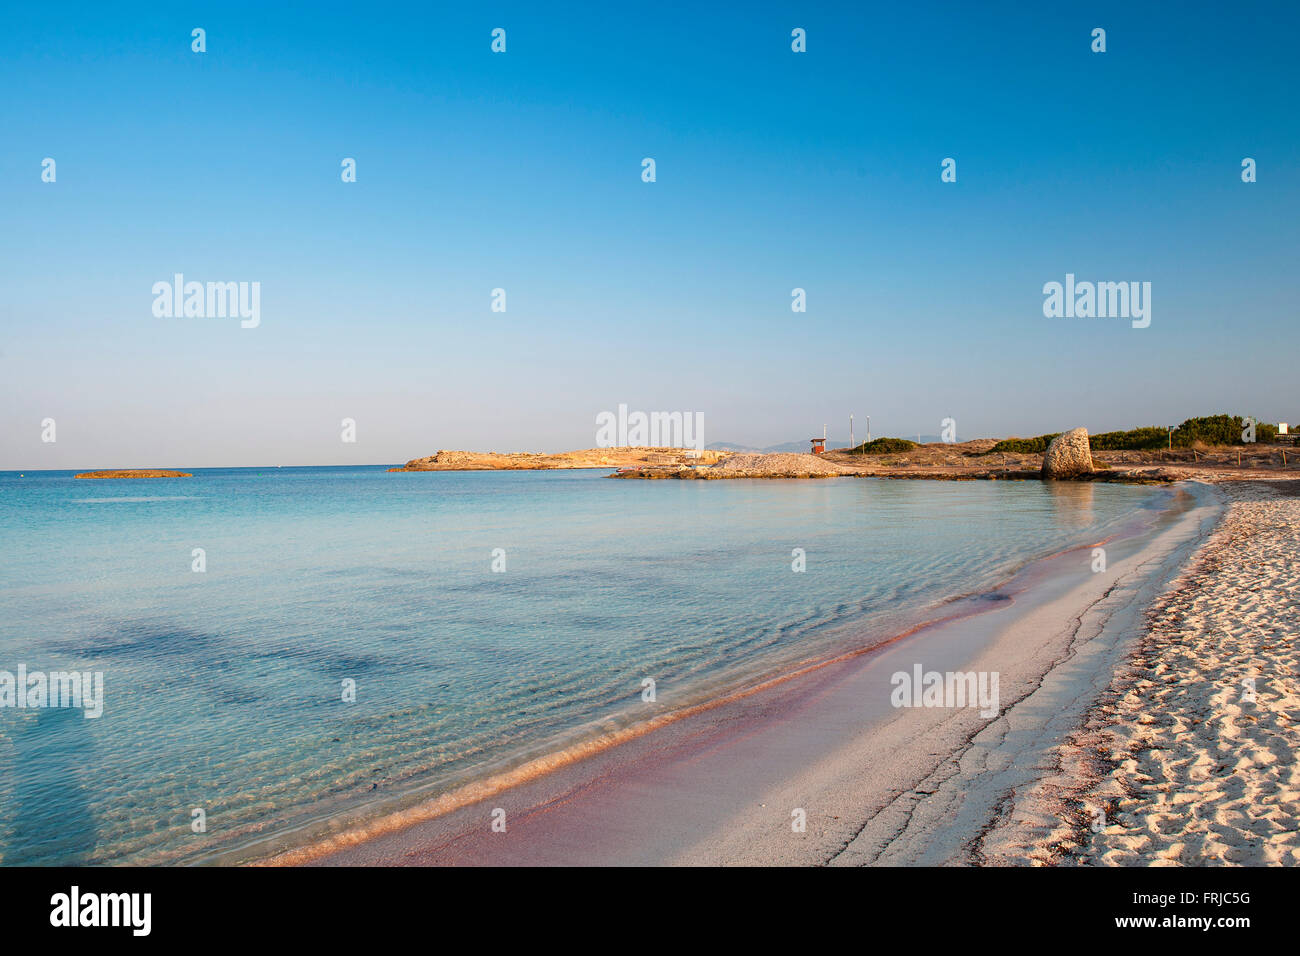 Formentera, Balearic Island, Spain. Beautiful picture postcard image of the Ses Illetes beach, voted the best beach - Stock Image